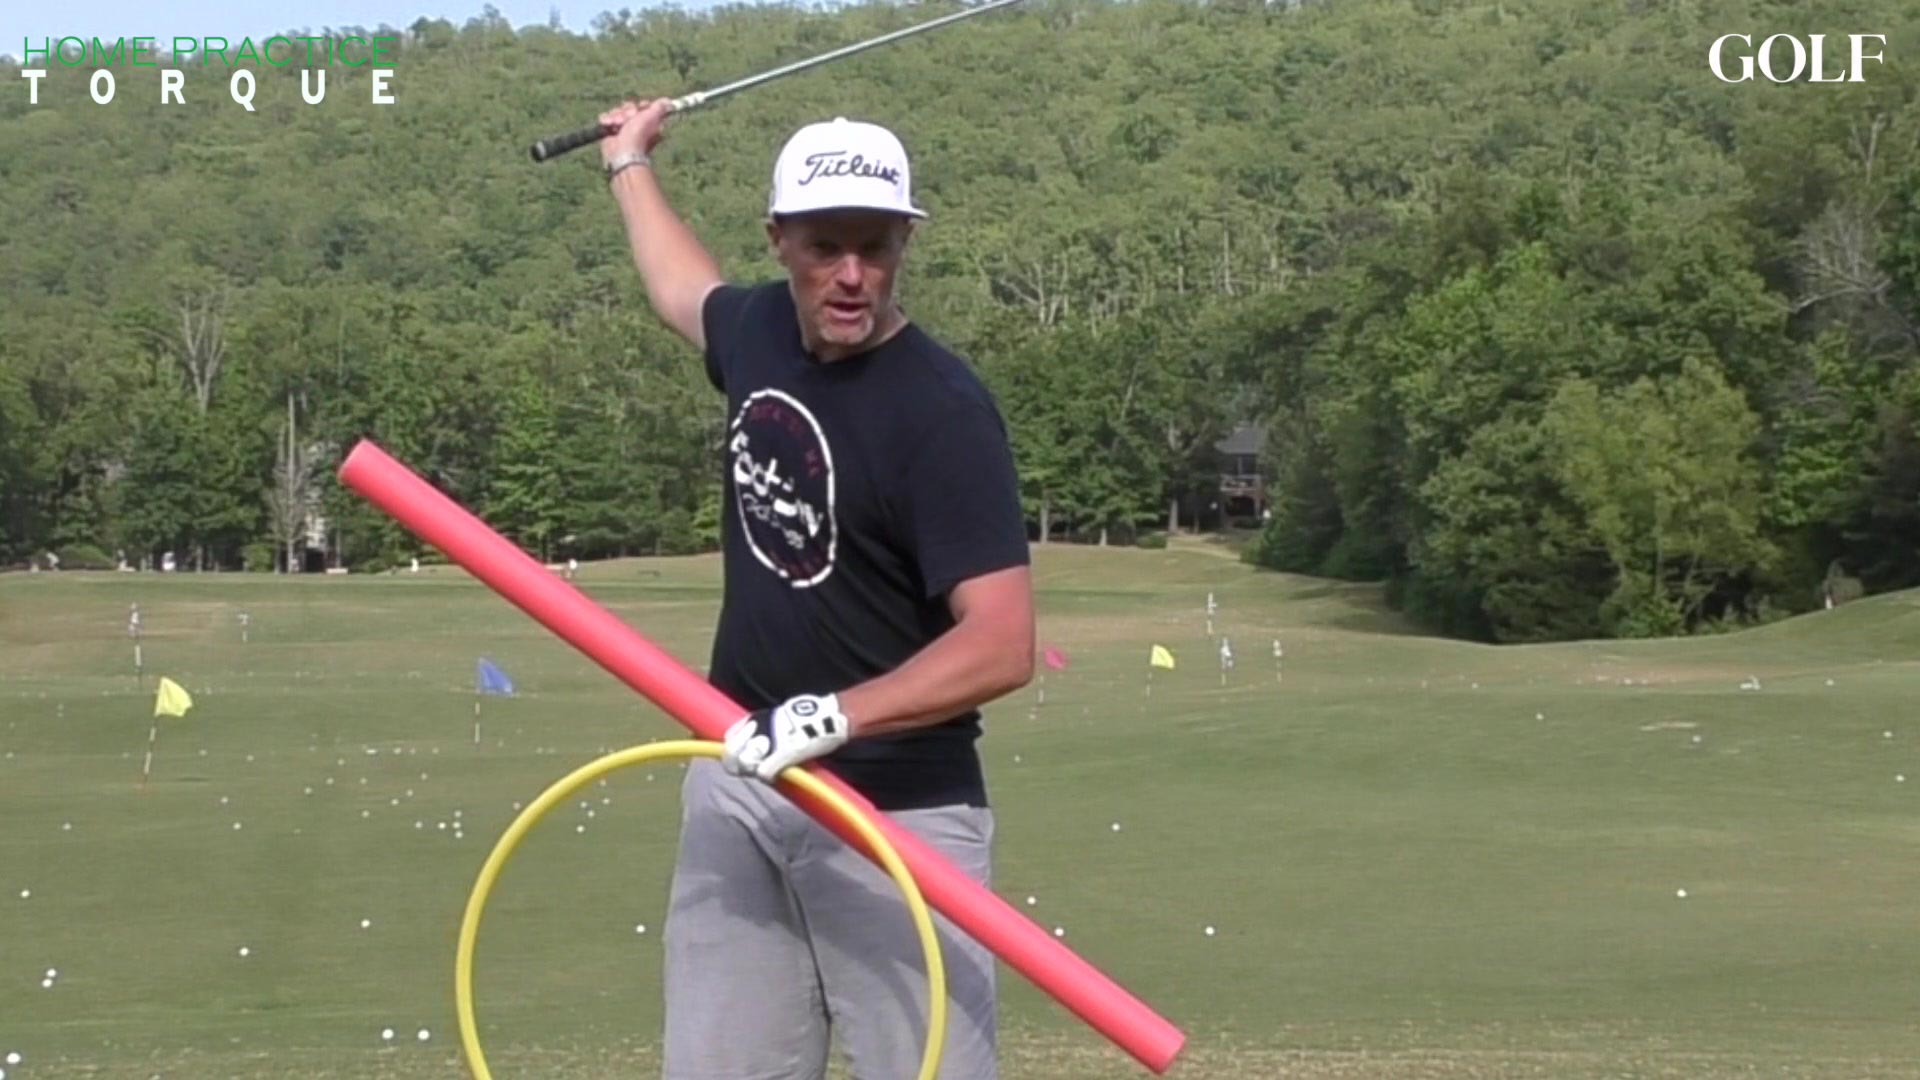 What's the best way to produce more torque in your golf swing?